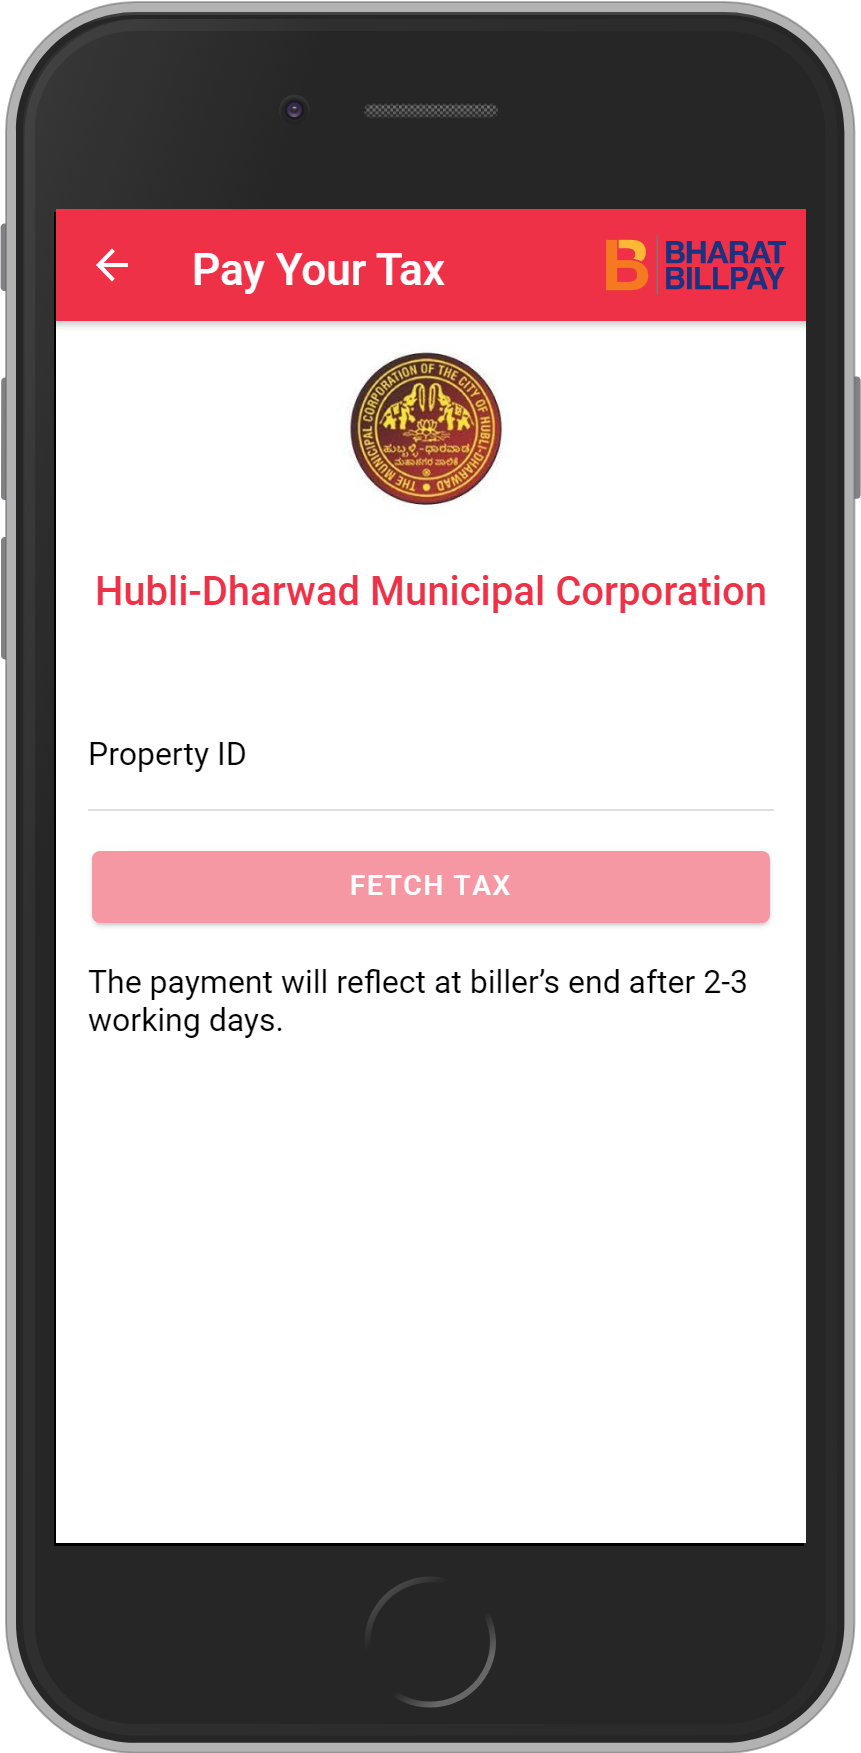 Get UNLIMITED <b>0.1%</b> CASHBACK on Hubli-Dharwad Municipal Corporation Recharges.